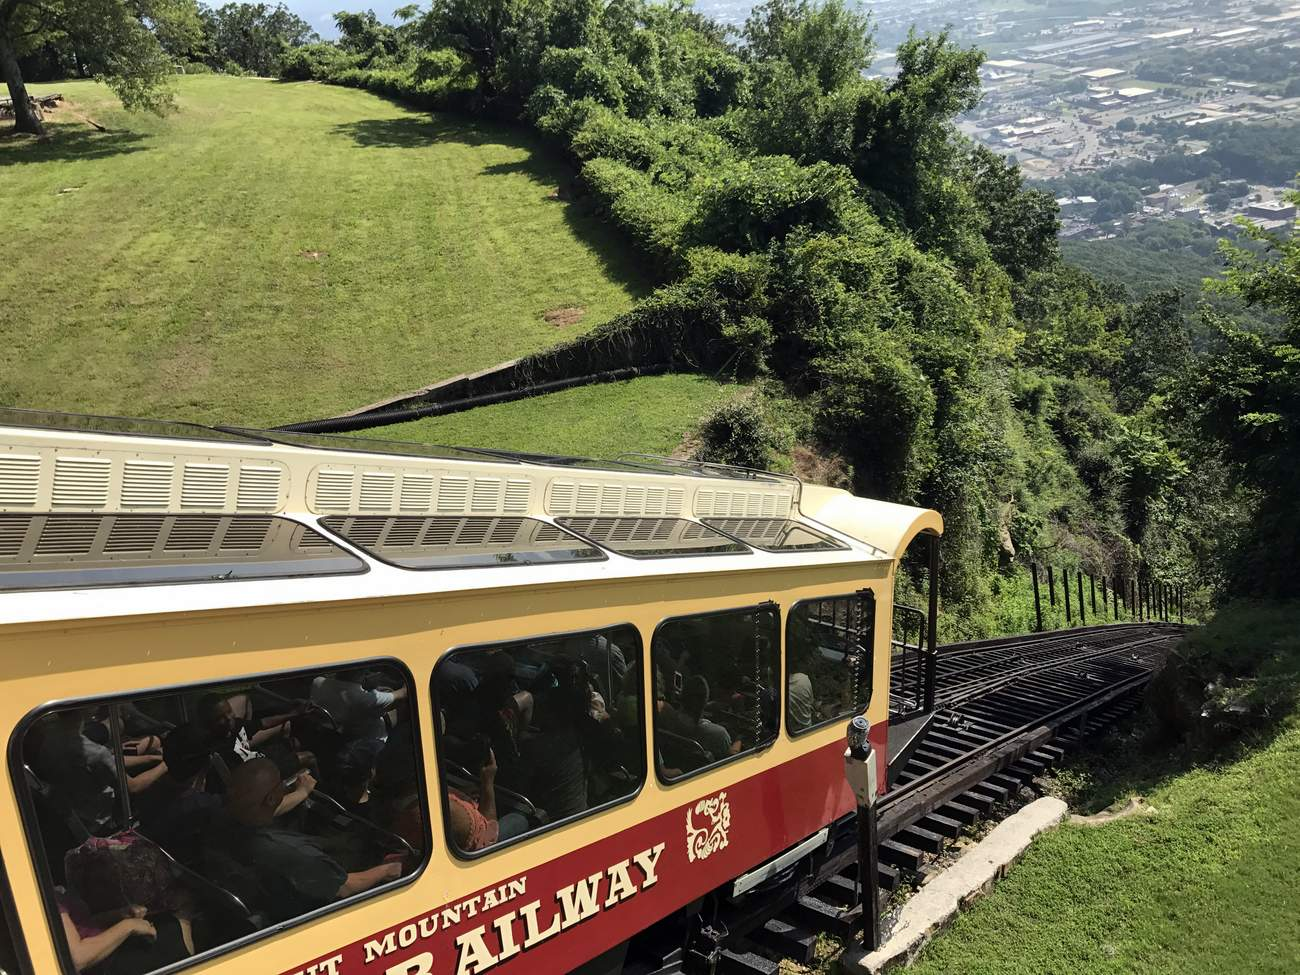 If you decide to skip the Incline Railway, do not skip Point Park which resides at the top of Lookout Mountain.